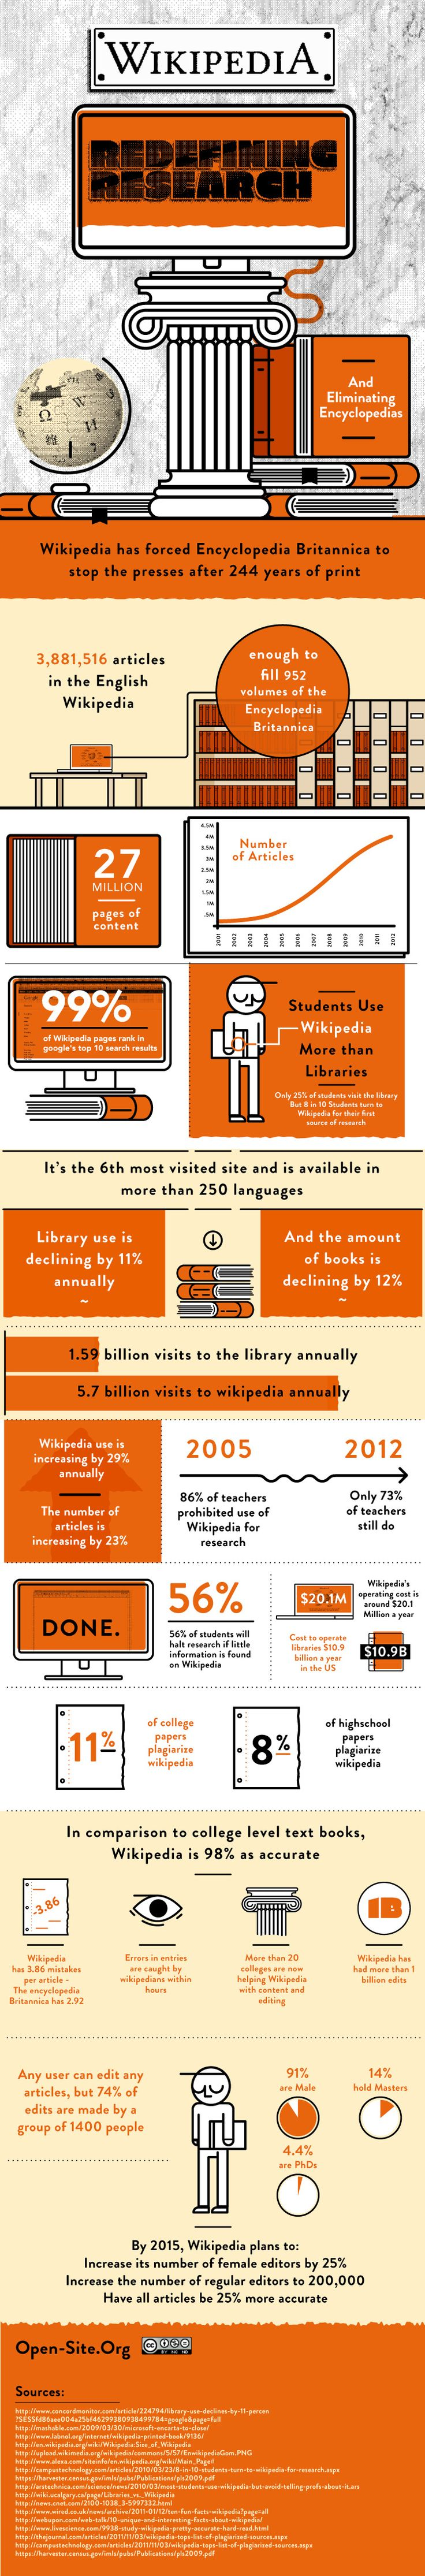 "Wikipedia – Redefining Research:  ""... it is still the number one dominant site when it comes to reference articles, winning pub quizzes, cheating at homework assignments and assassinating 244 year old print encyclopedias...."" / Mar 26 '12"